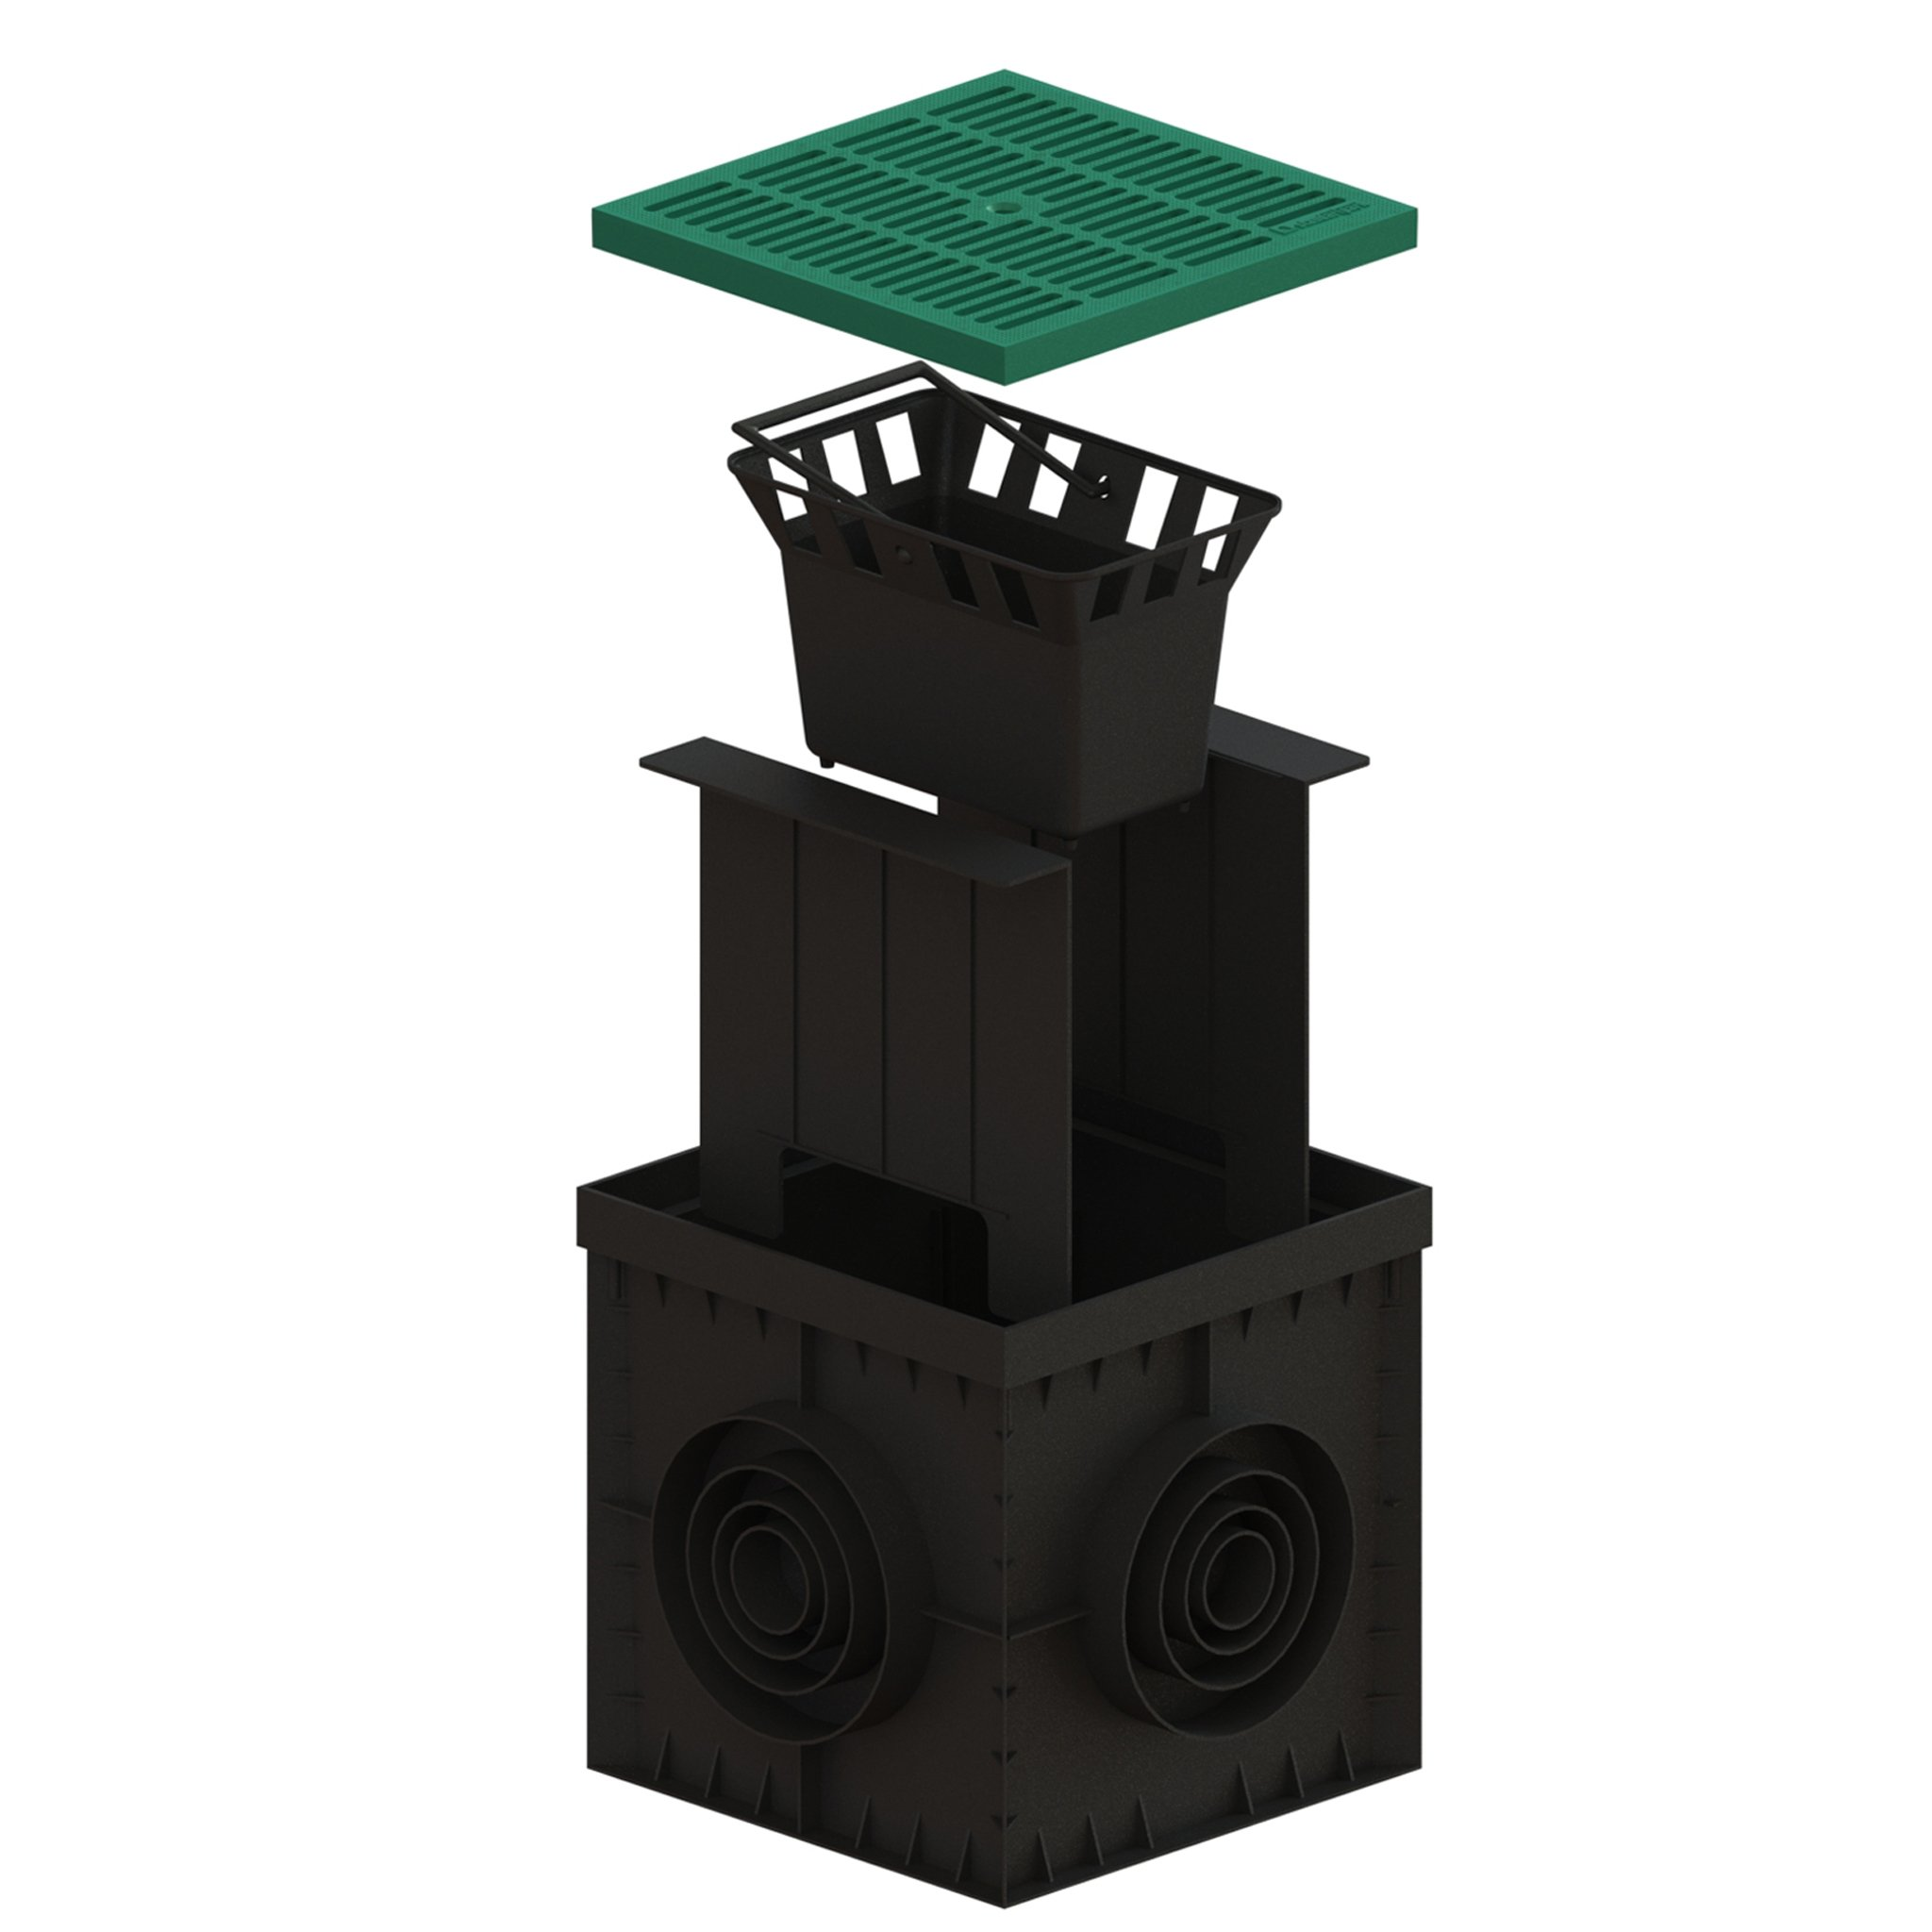 Standartpark - 12x12 Catch Basin Green grate package with debris basket and partitions included!